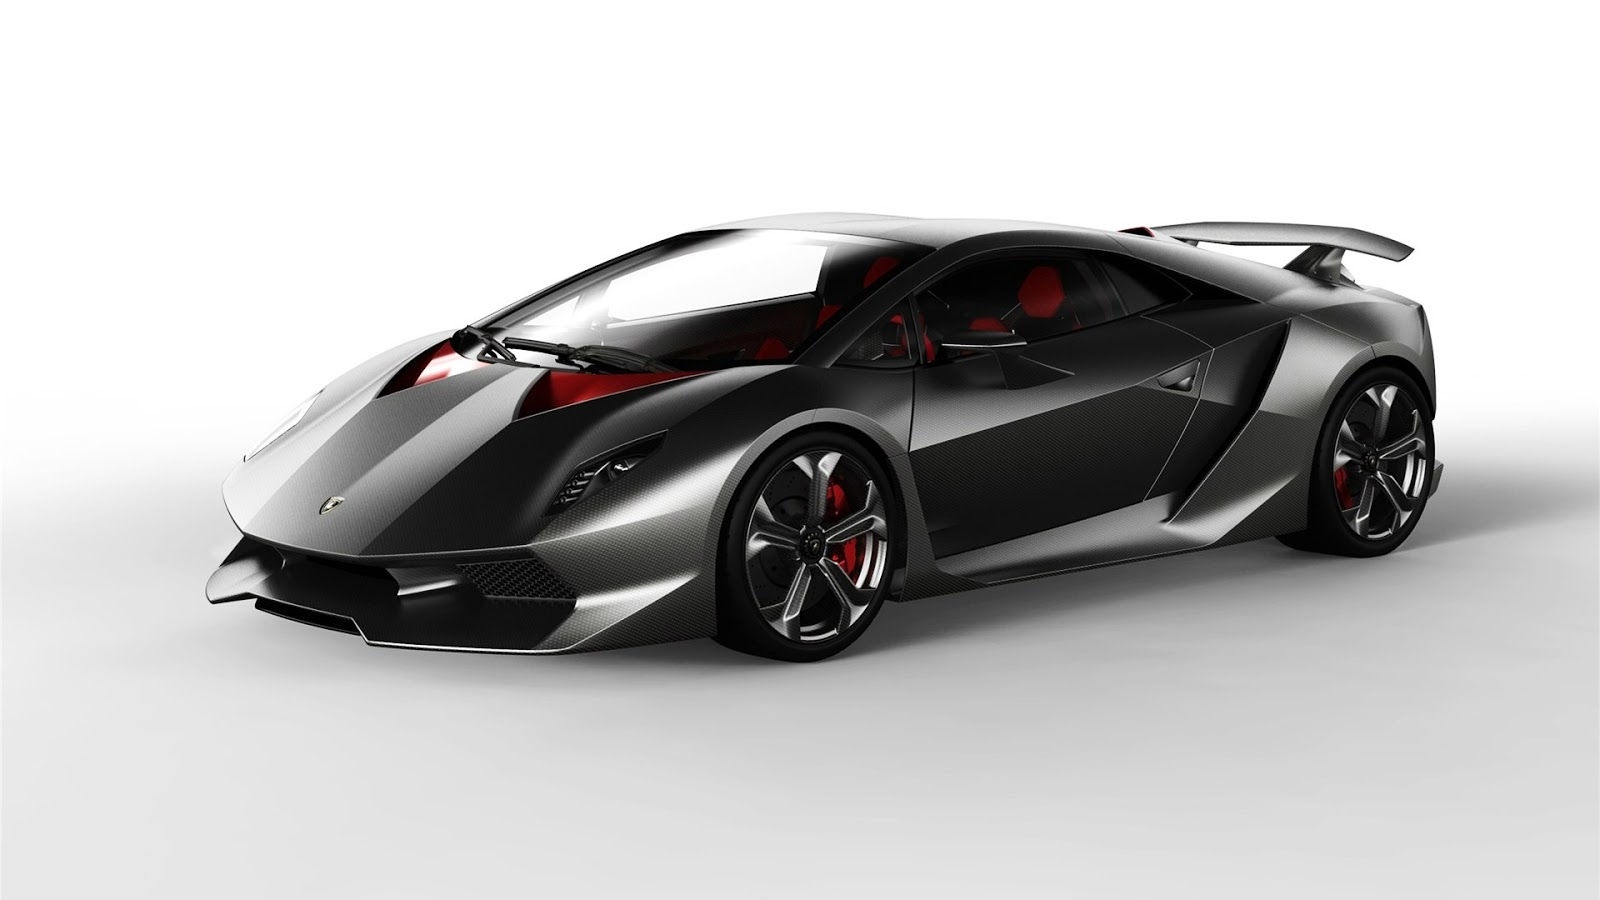 New Cool Cars Latest Cars Wallpapers - Latest cool cars